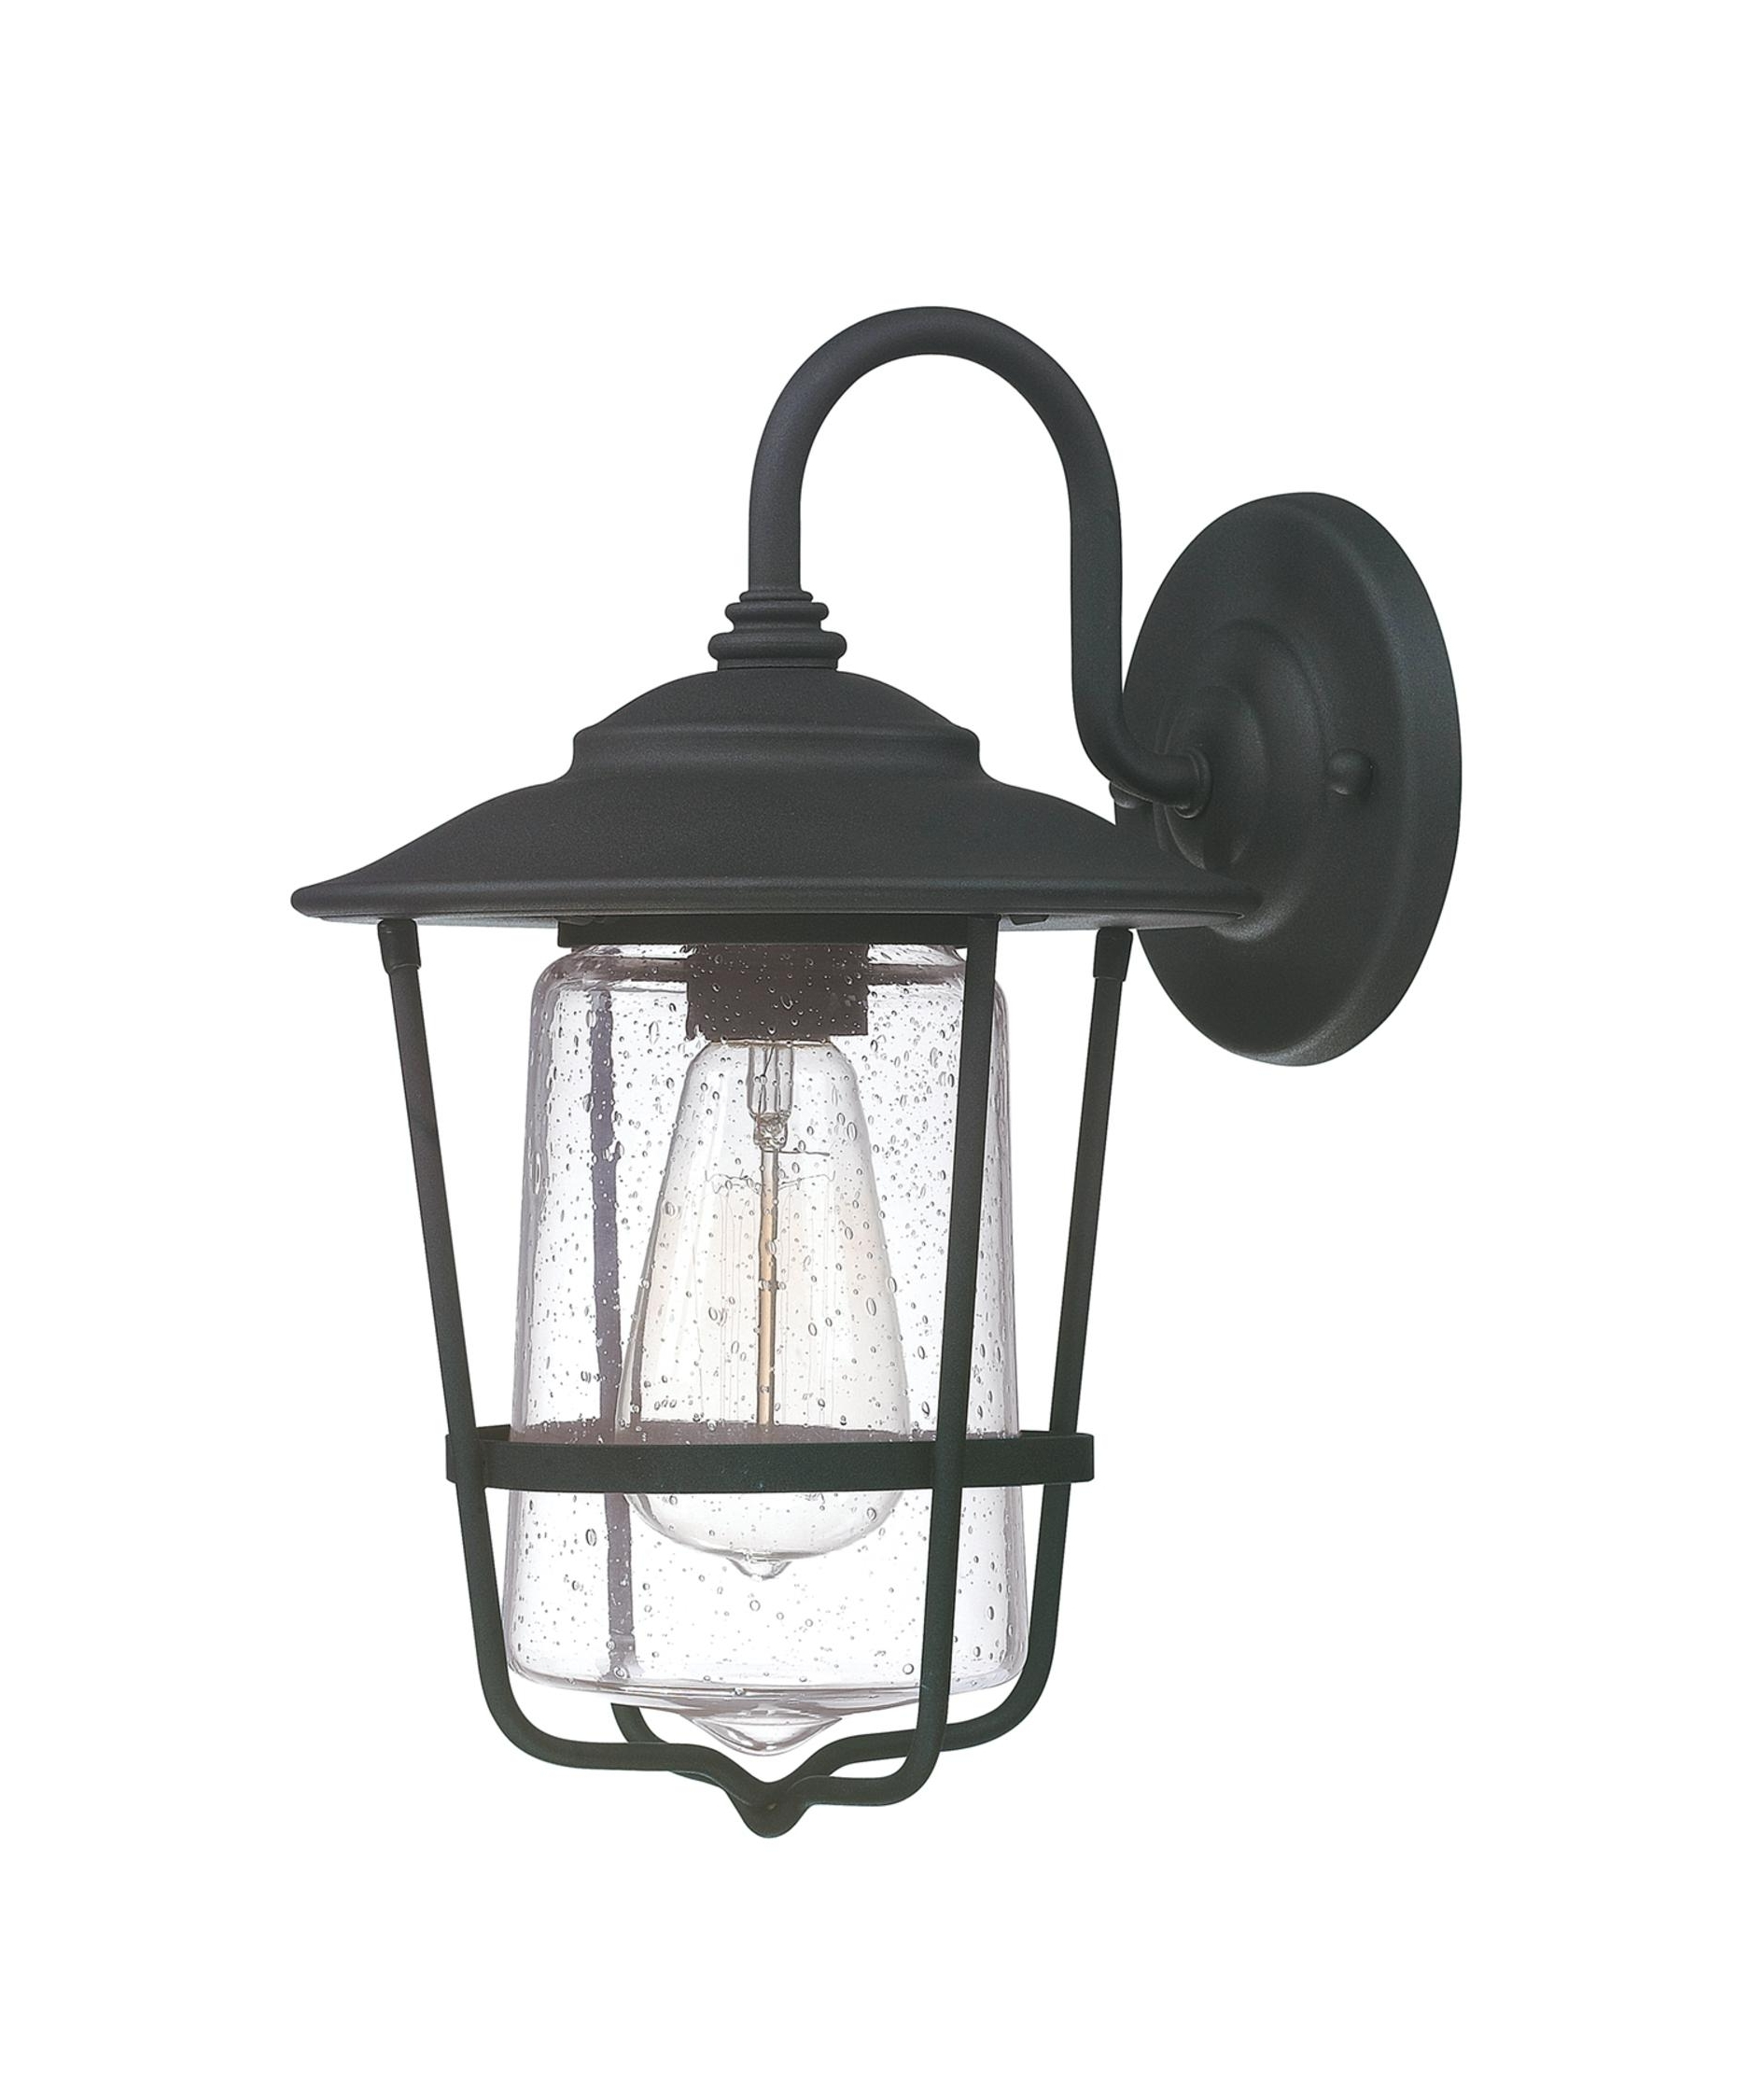 Best And Newest Outdoor Wall Lighting At Houzz For Capital Lighting 9601 Creekside 8 Inch Wide 1 Light Outdoor Wall (View 15 of 20)